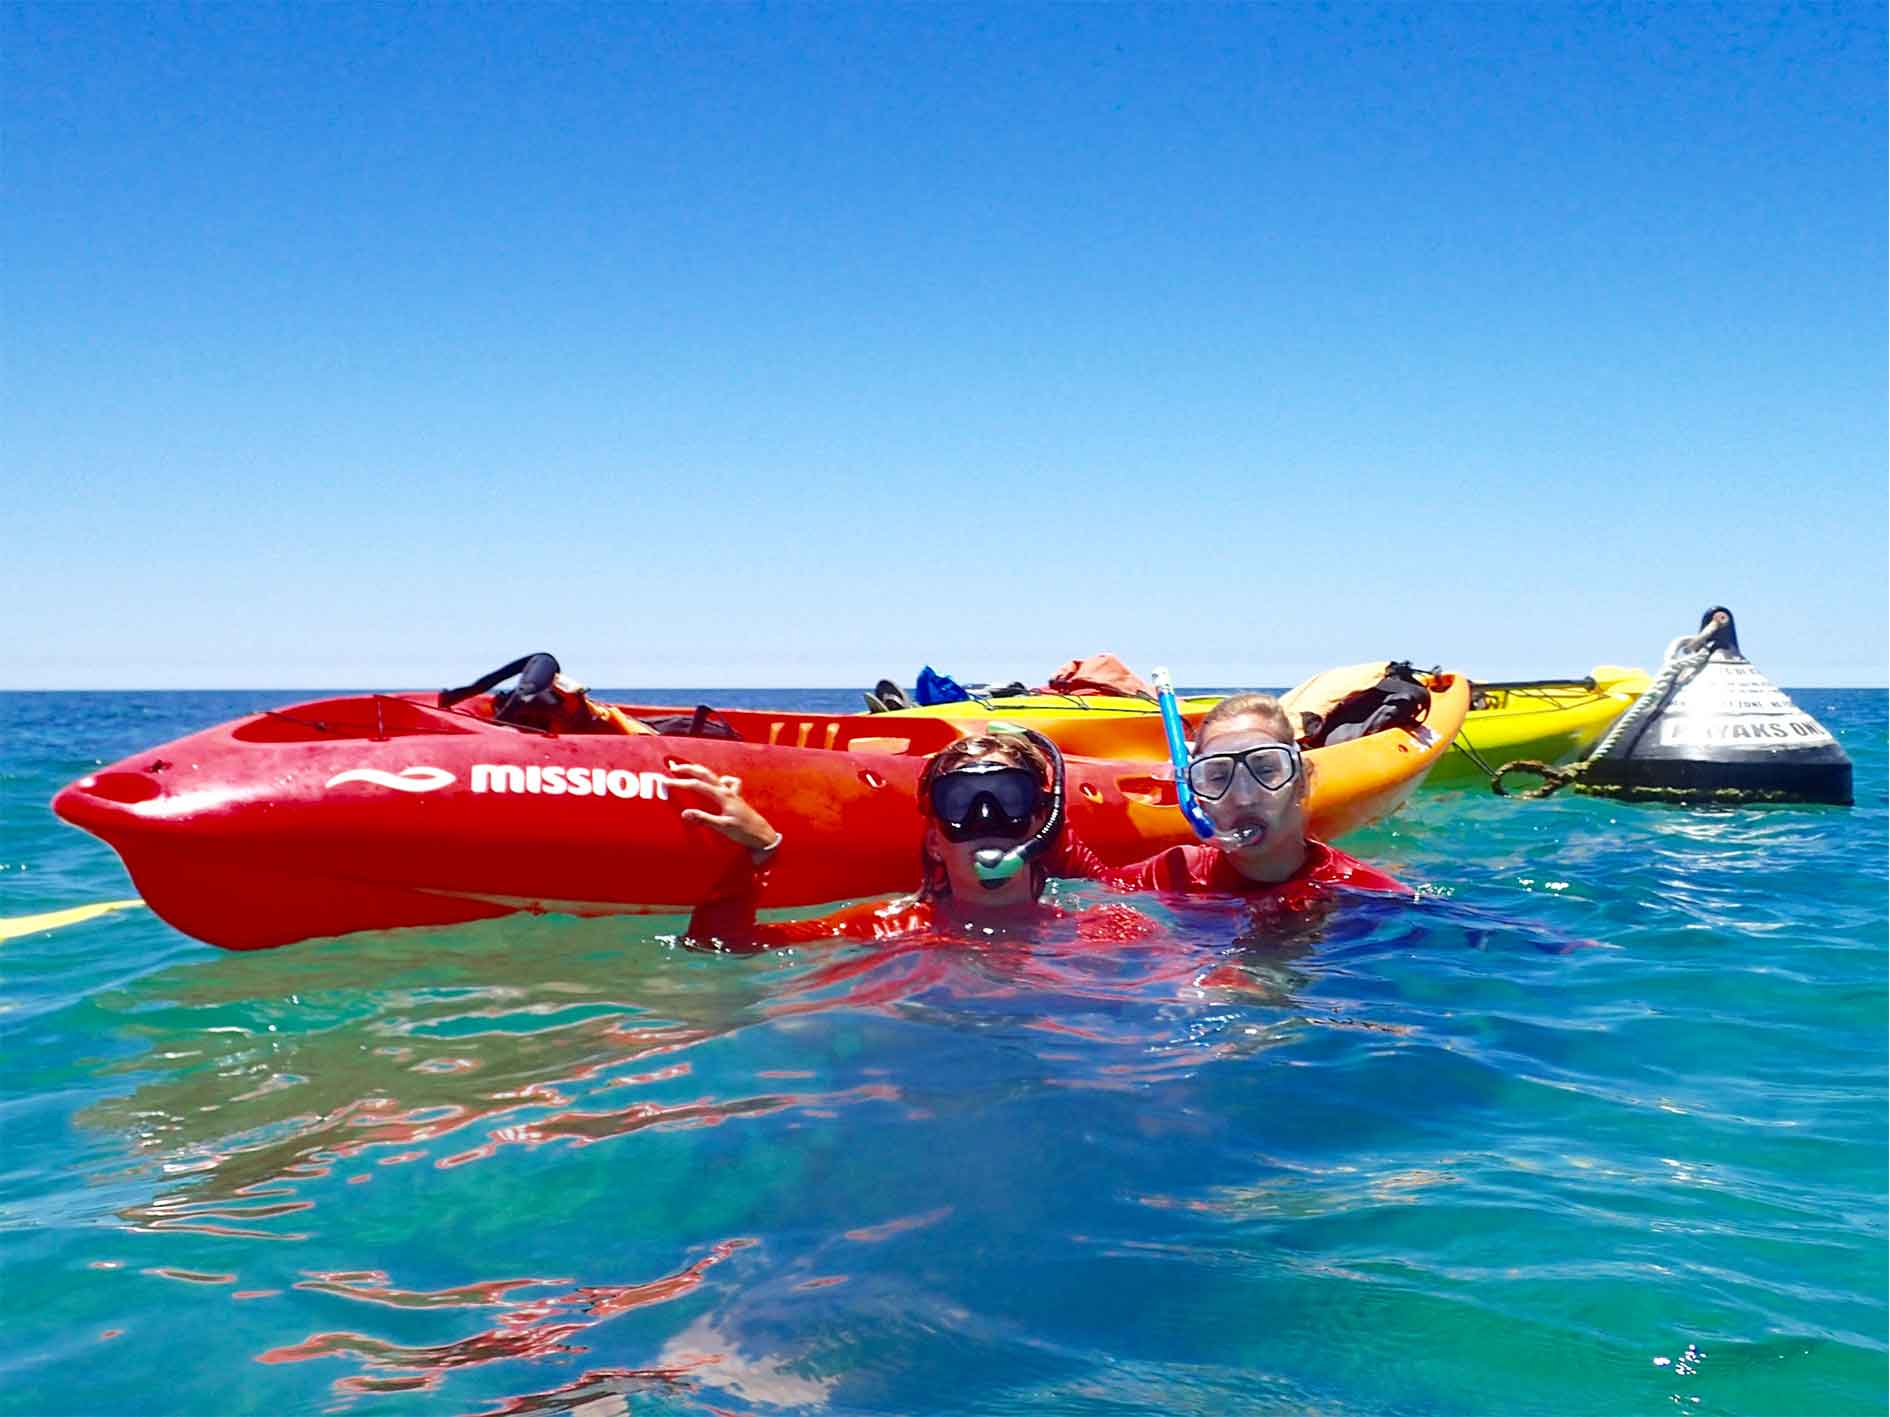 Turtle Tour, sea kayak tour, snorkel tour, exmouth adventure co, exmouth, western australia, wa, ningaloo reef, coral coast, eco tour